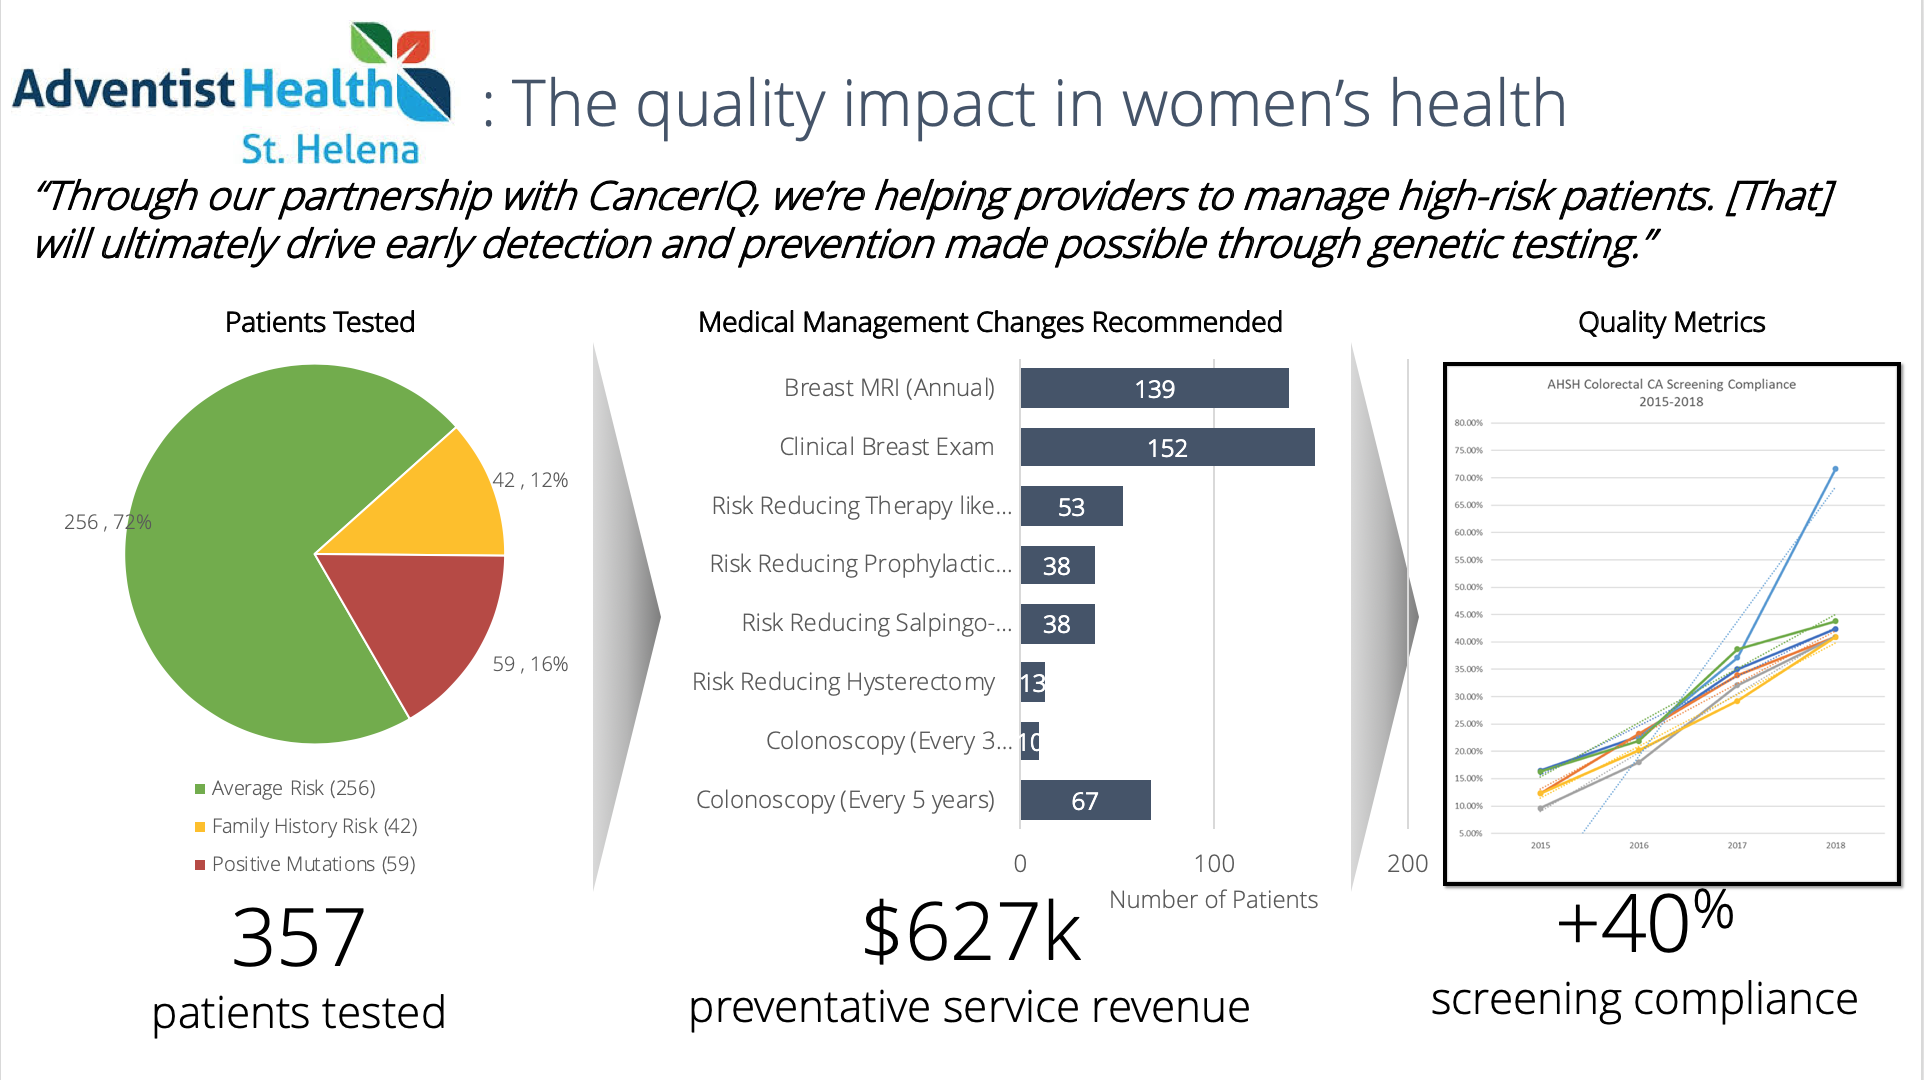 Quality impact in women's health